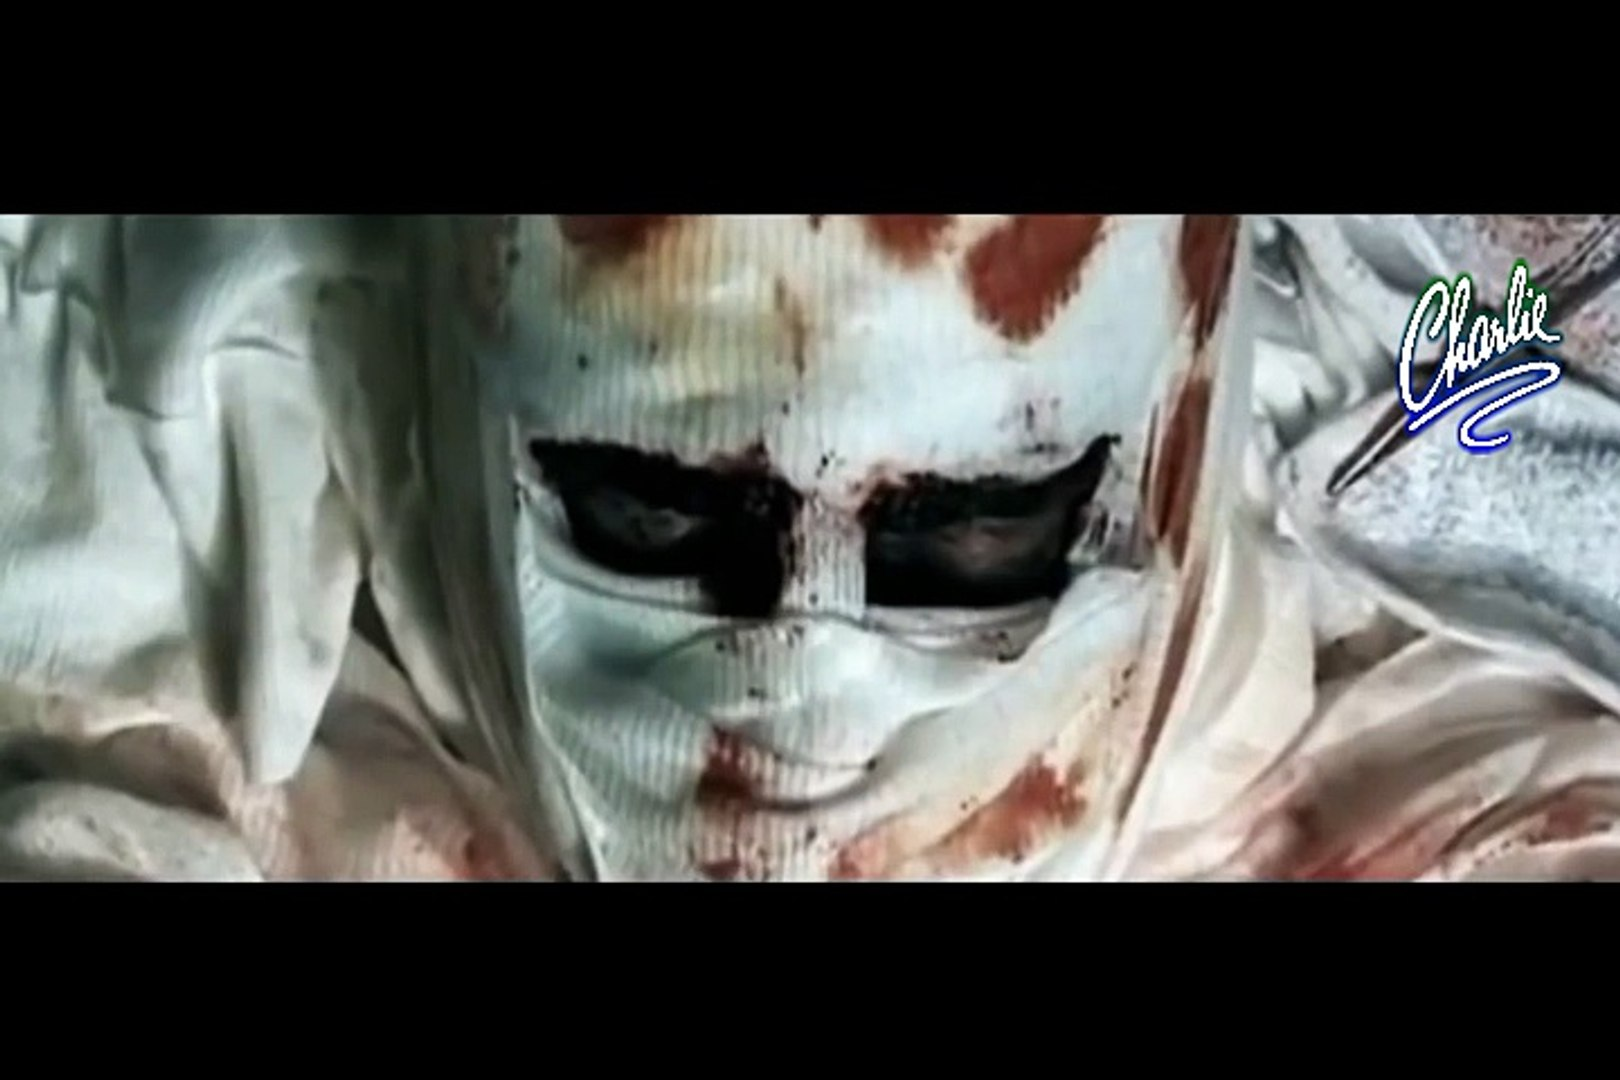 Crank 3 Trailer Teaser 2019 Jason Statham Action Movie Exclusive Hd Video Dailymotion